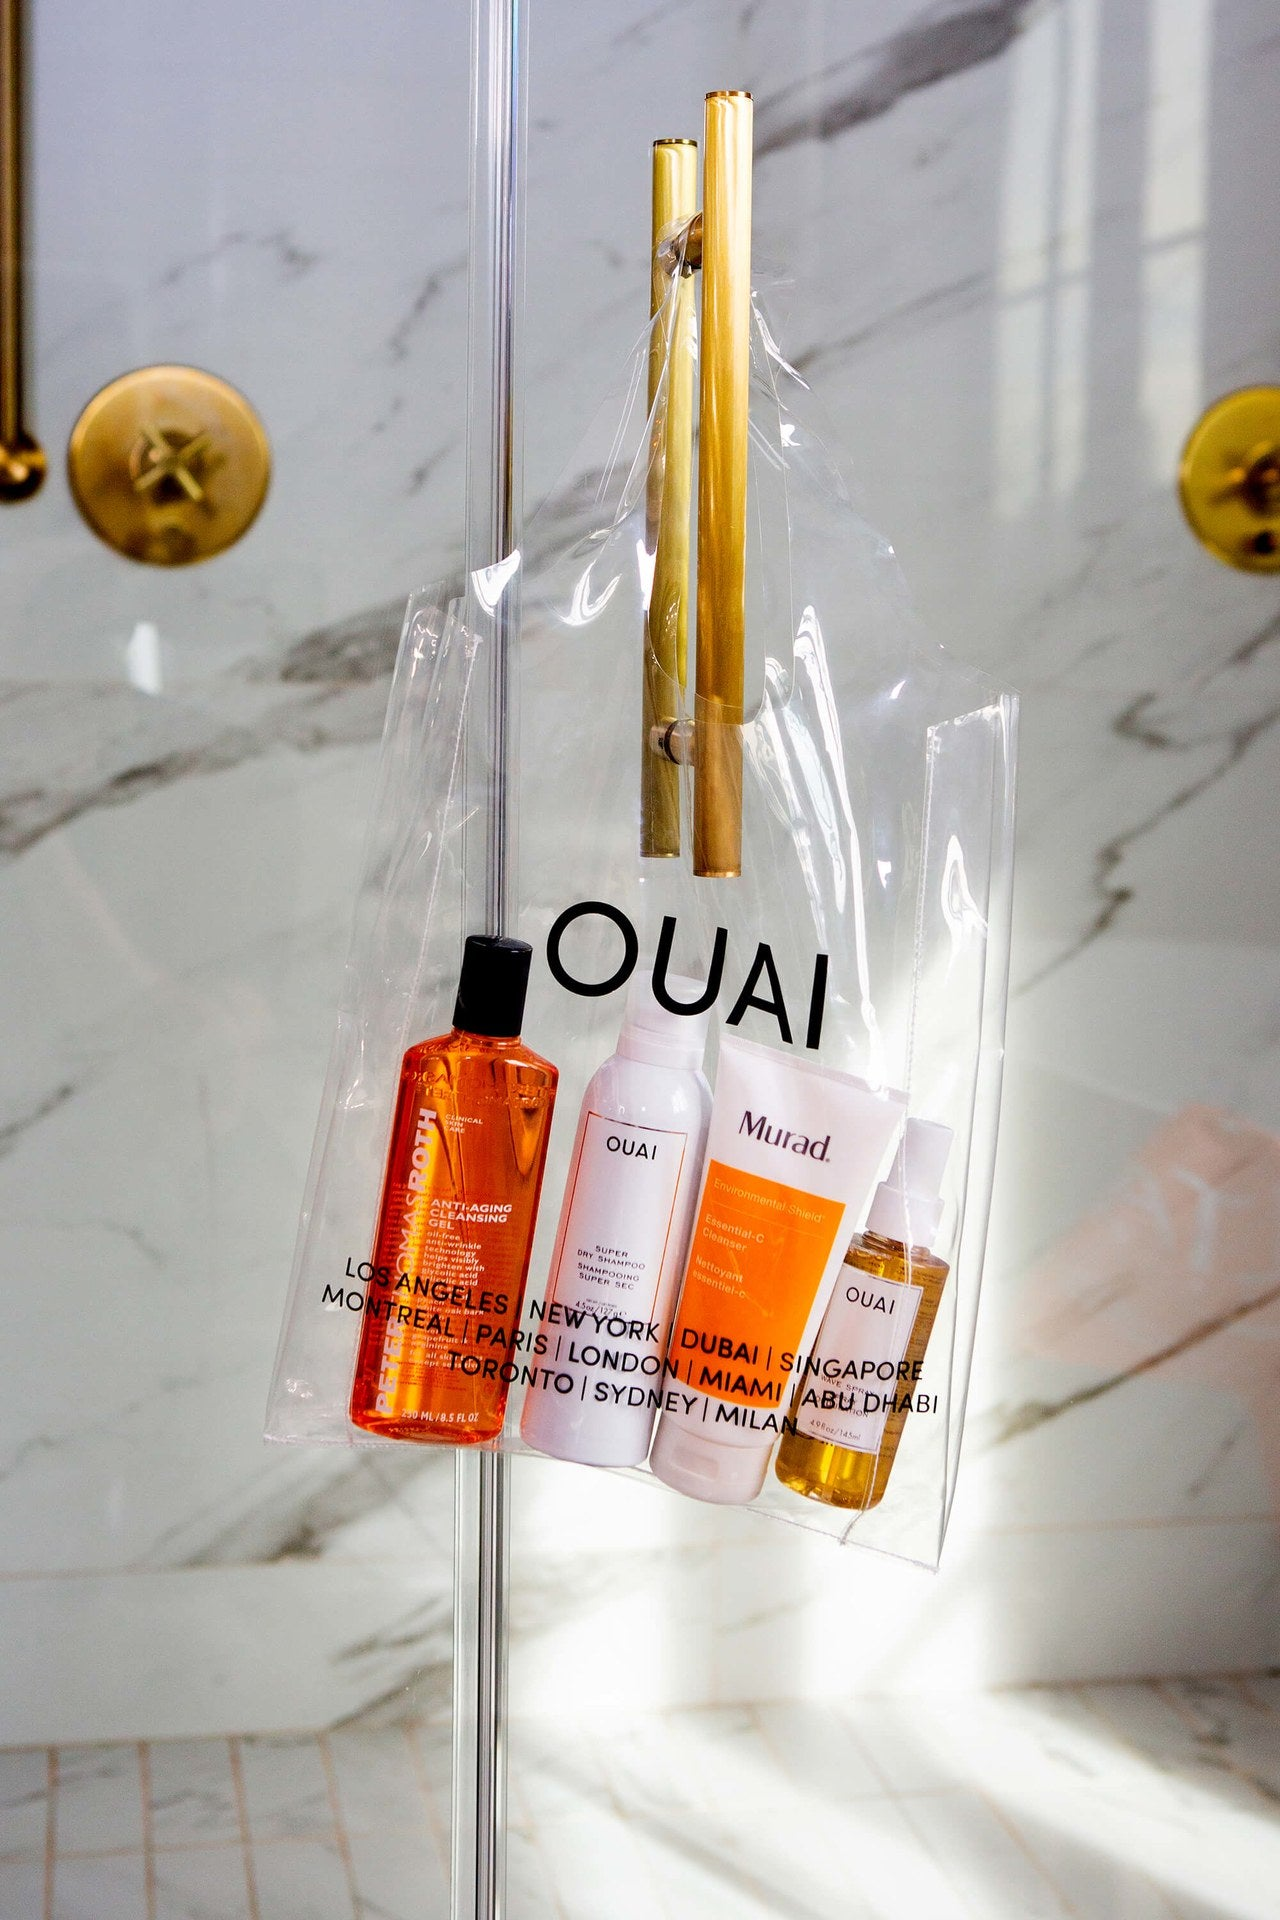 quai launches in ulta